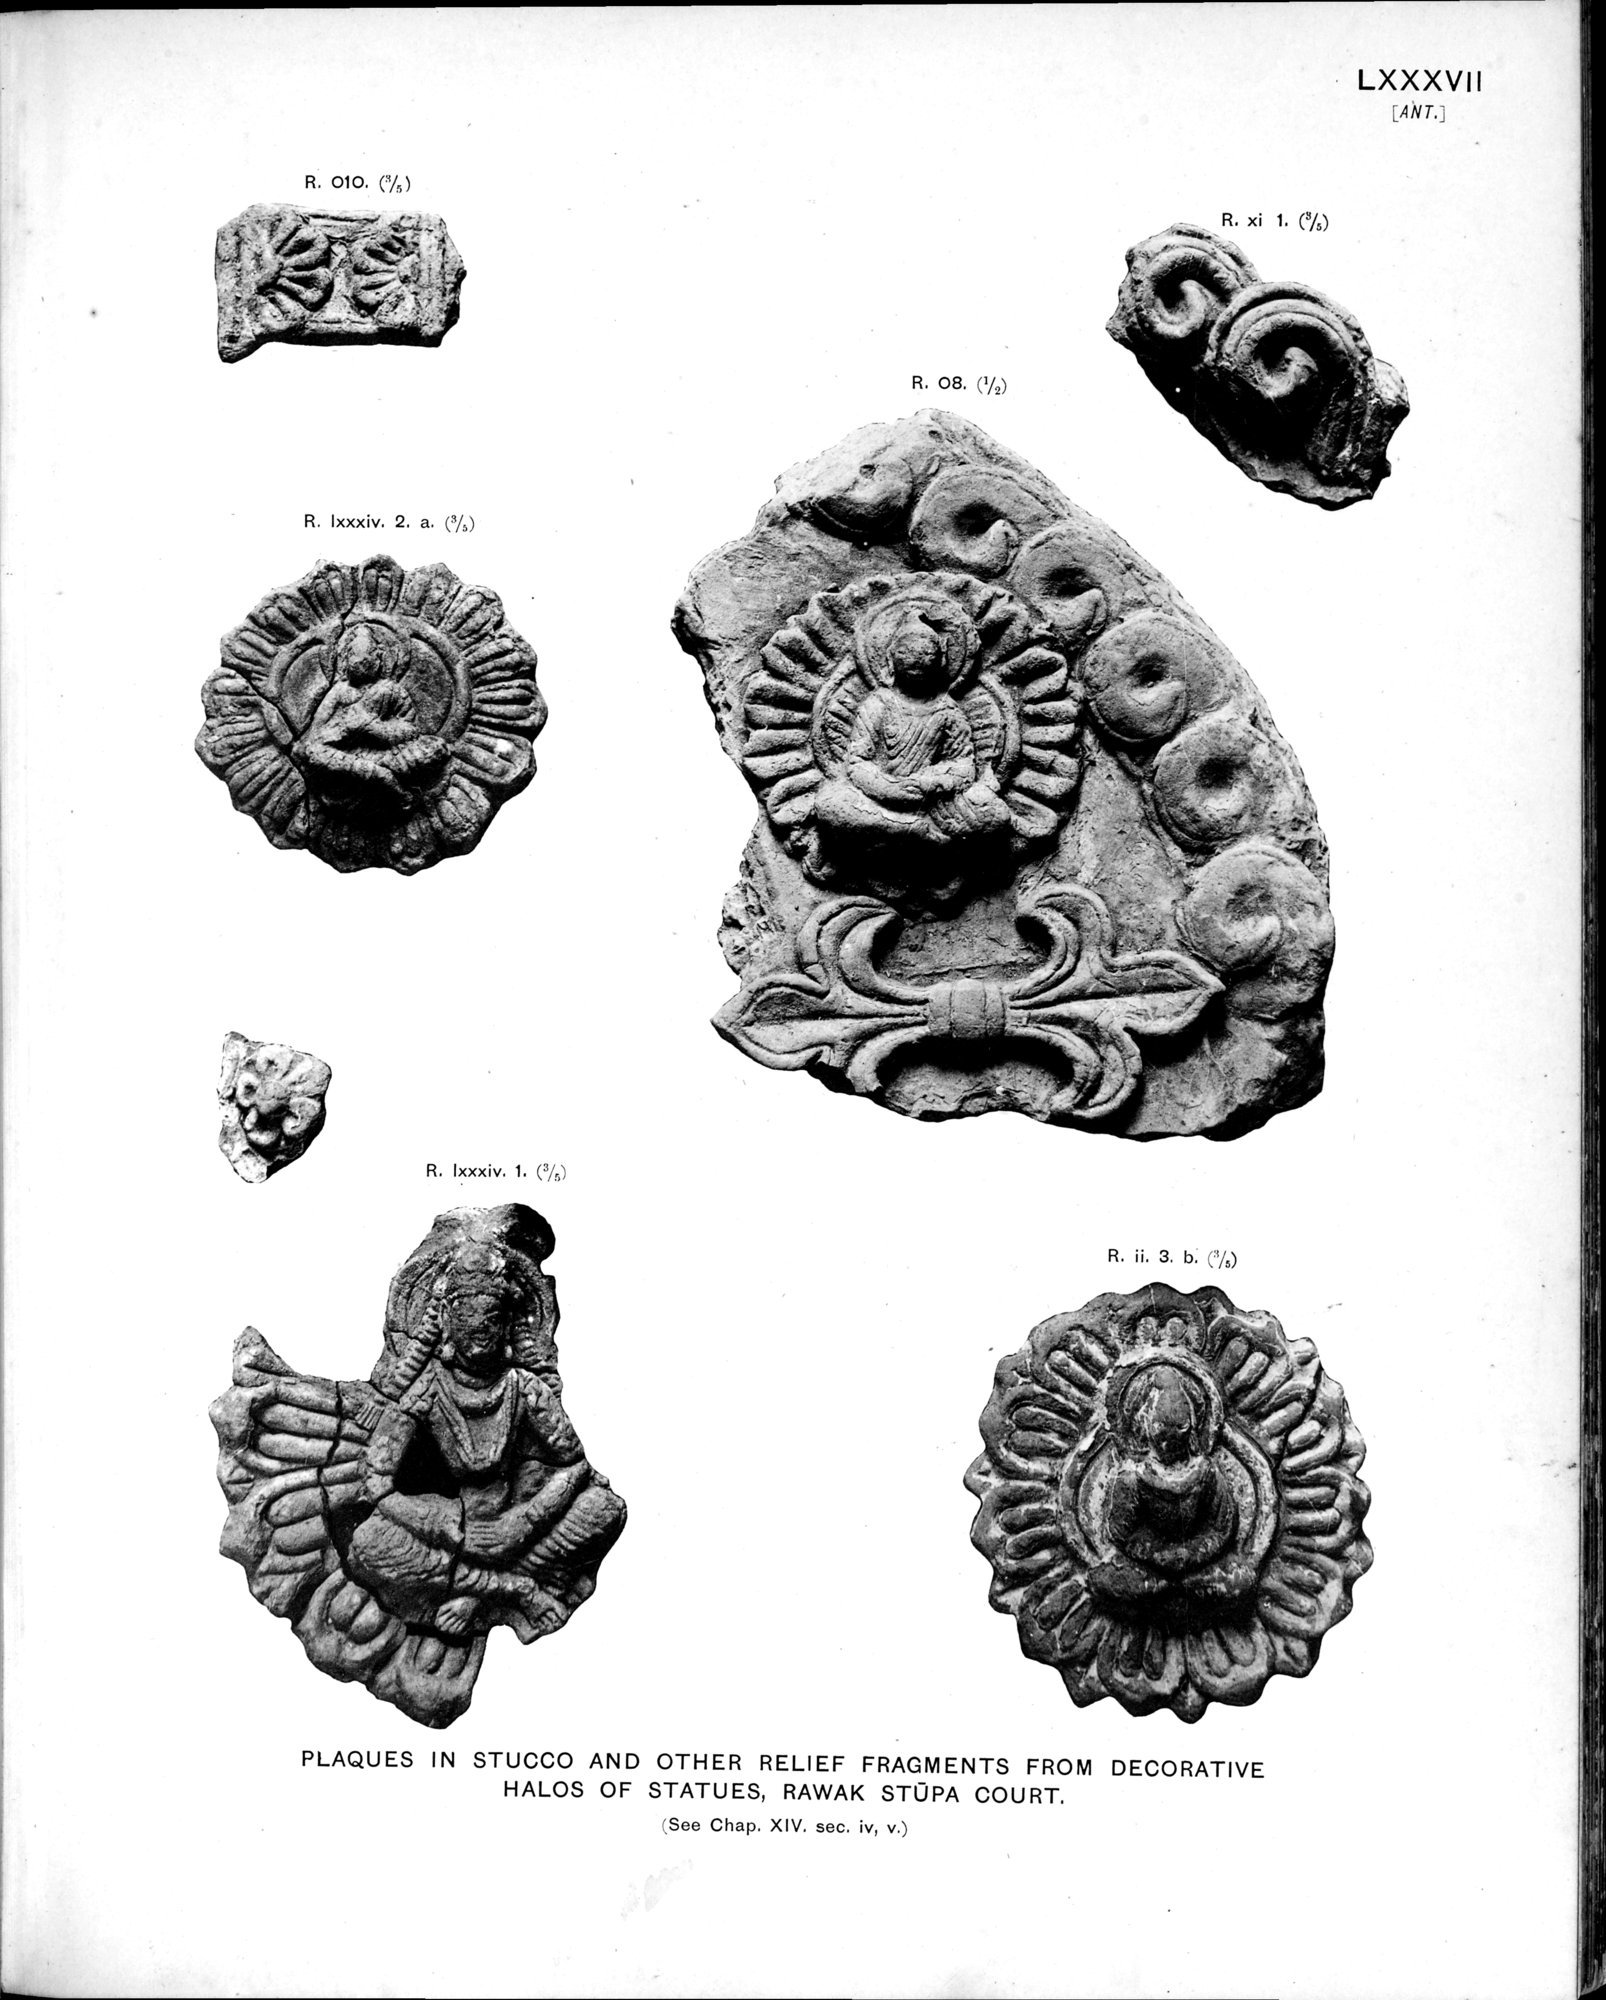 Ancient Khotan : vol.2 / Page 185 (Grayscale High Resolution Image)